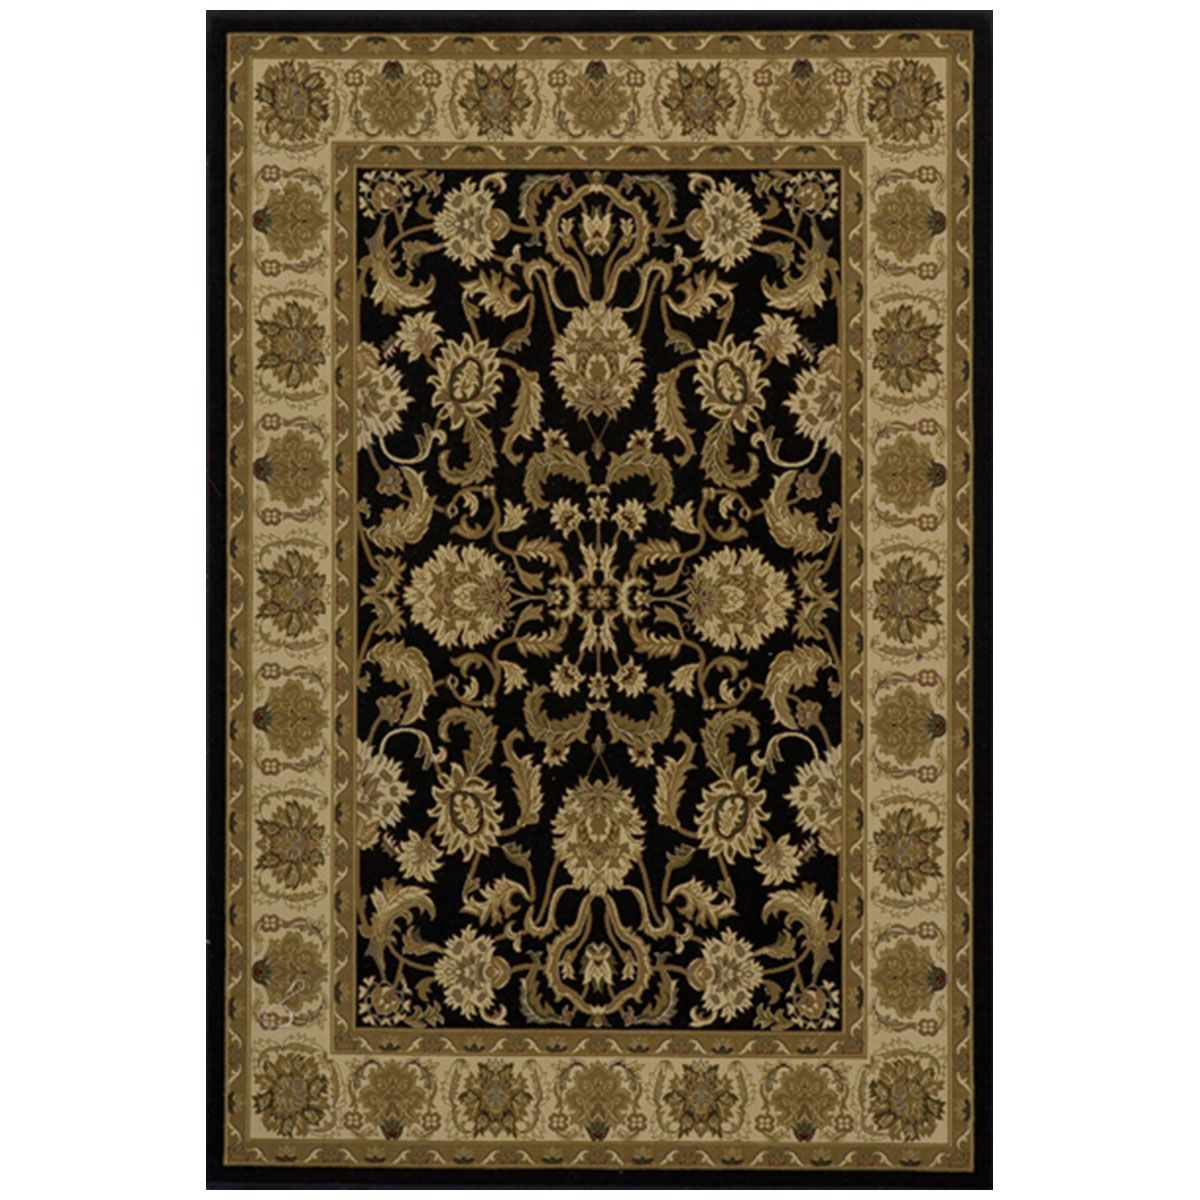 Royalry 04blk2033 Black Area Rugs Area Rugs Black Rug